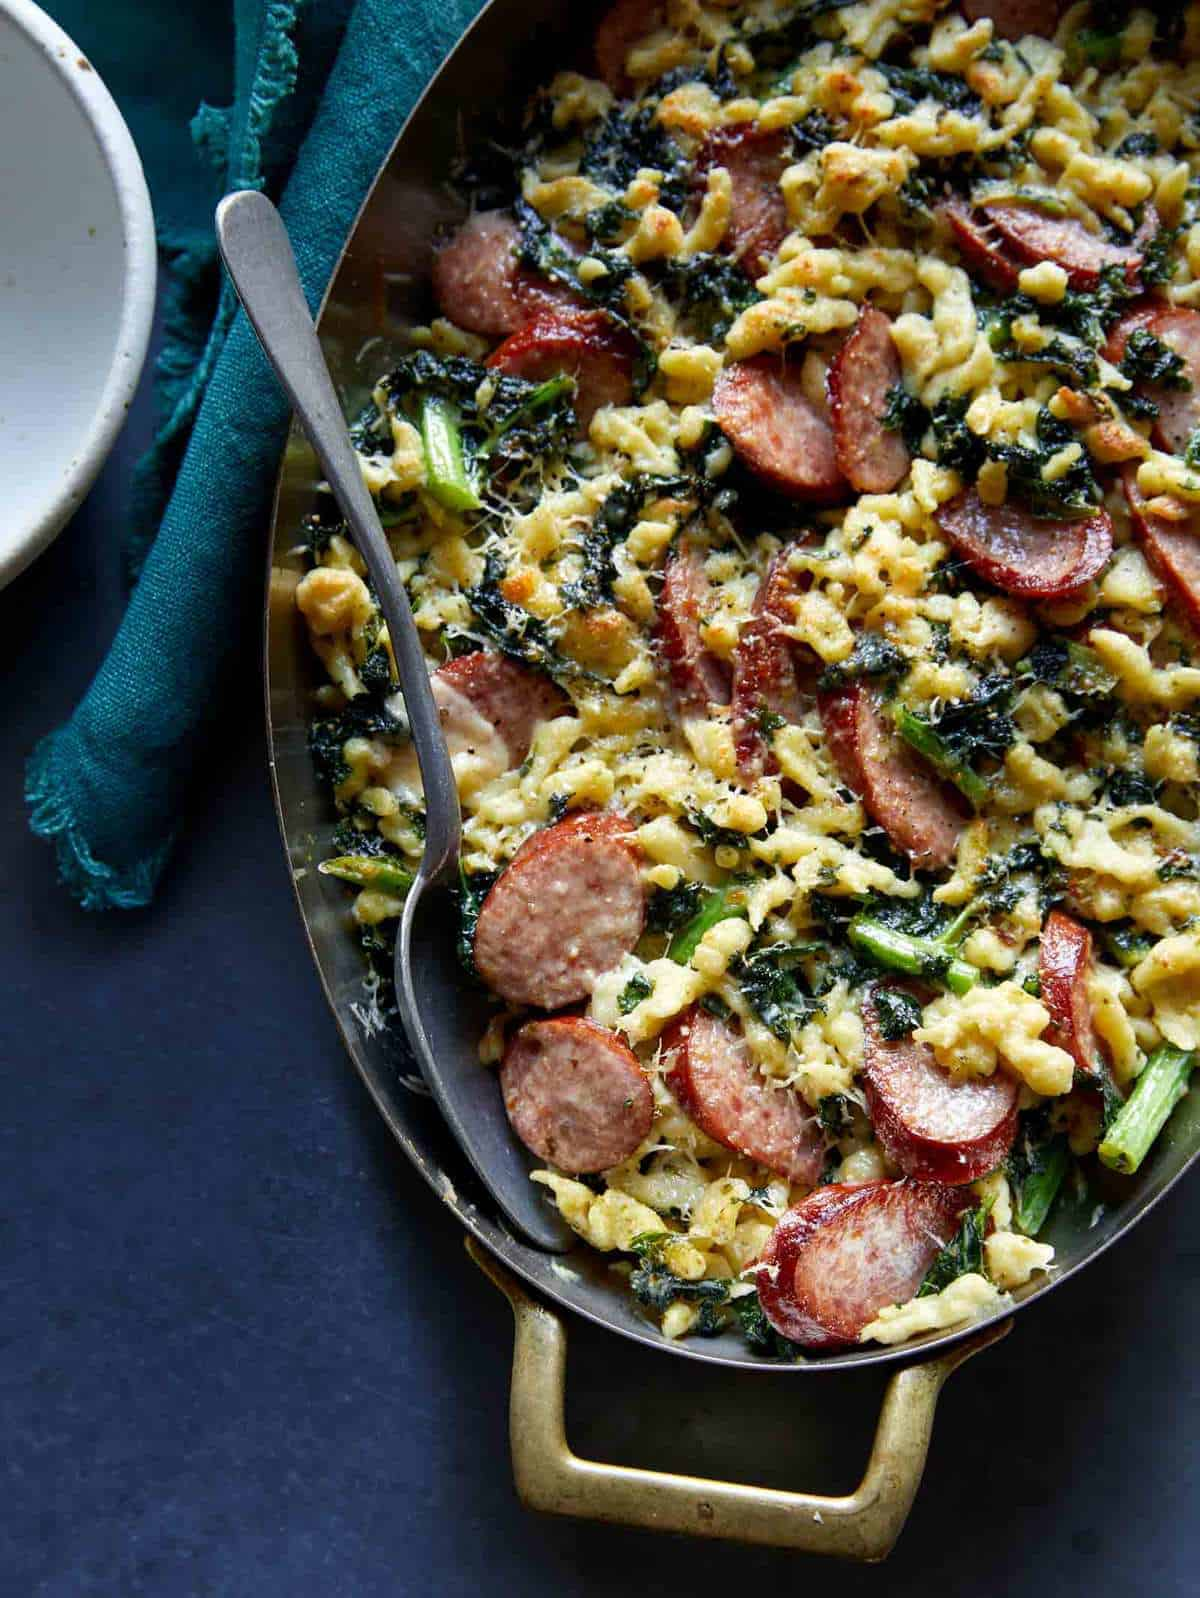 A close up of sausage kale and spaetzle pesto bake in a pan with a spoon.